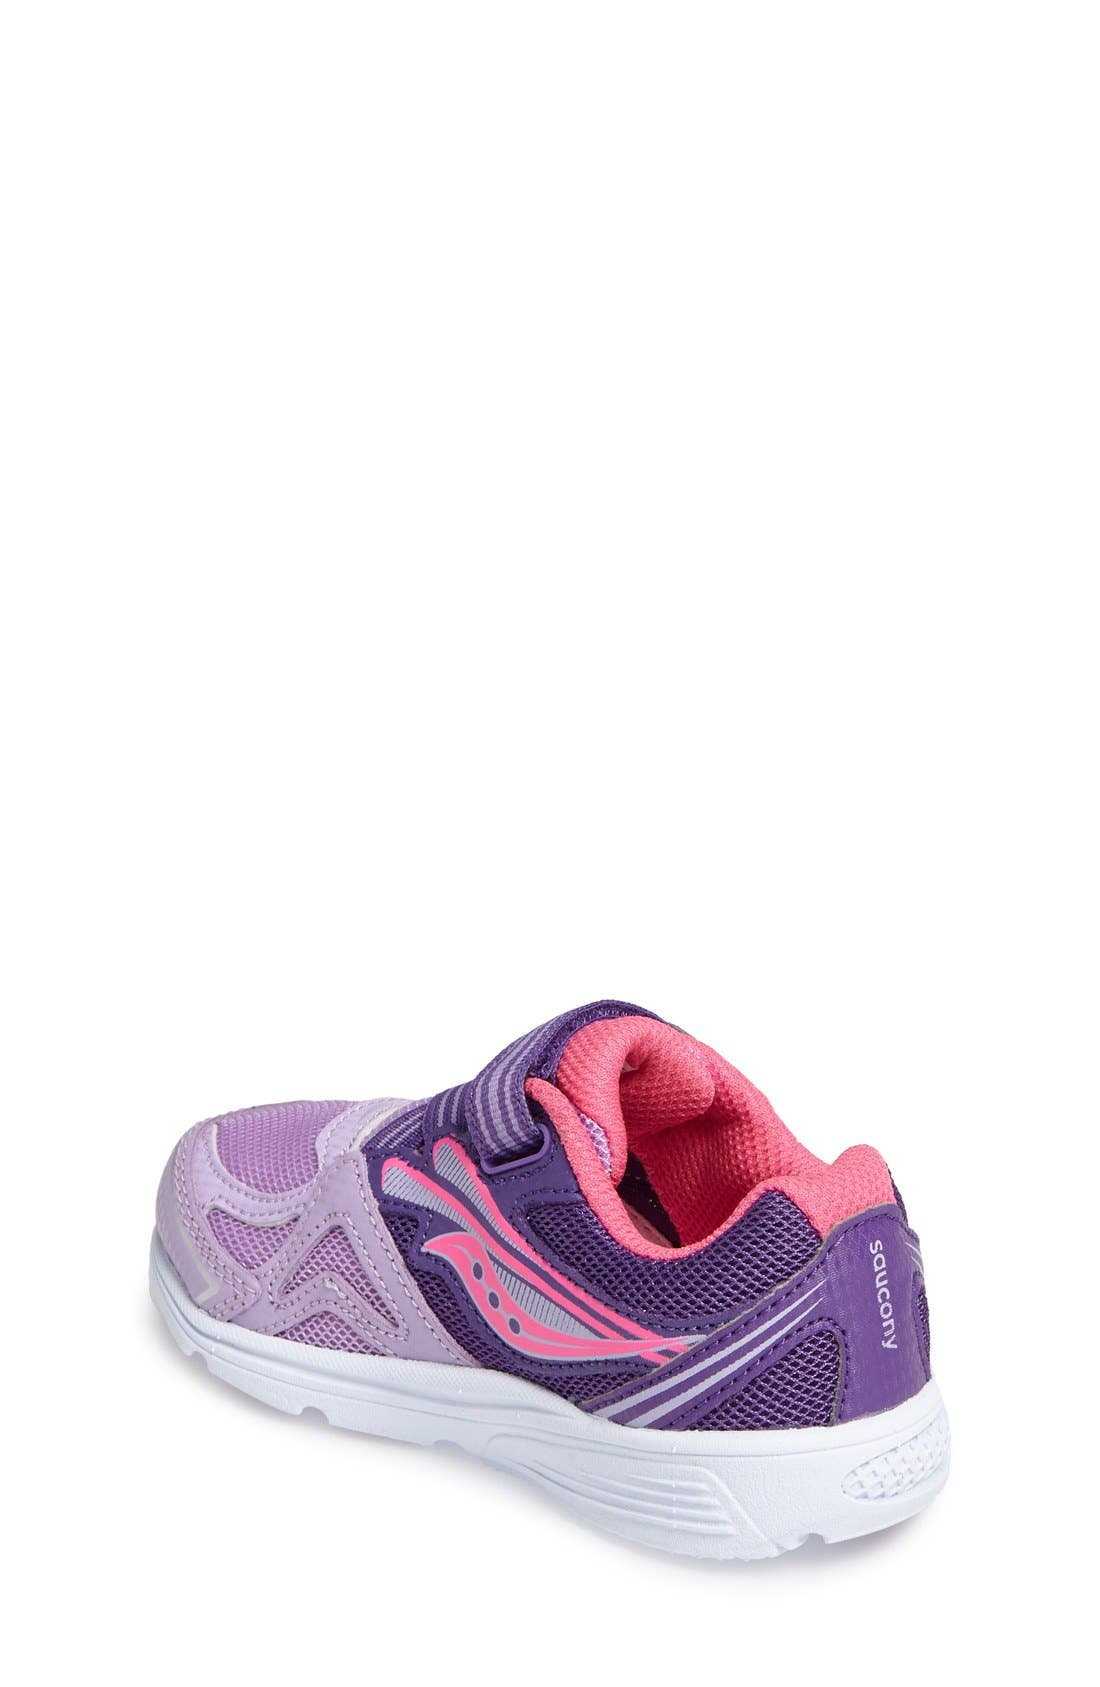 Baby Ride Sneaker,                             Alternate thumbnail 12, color,